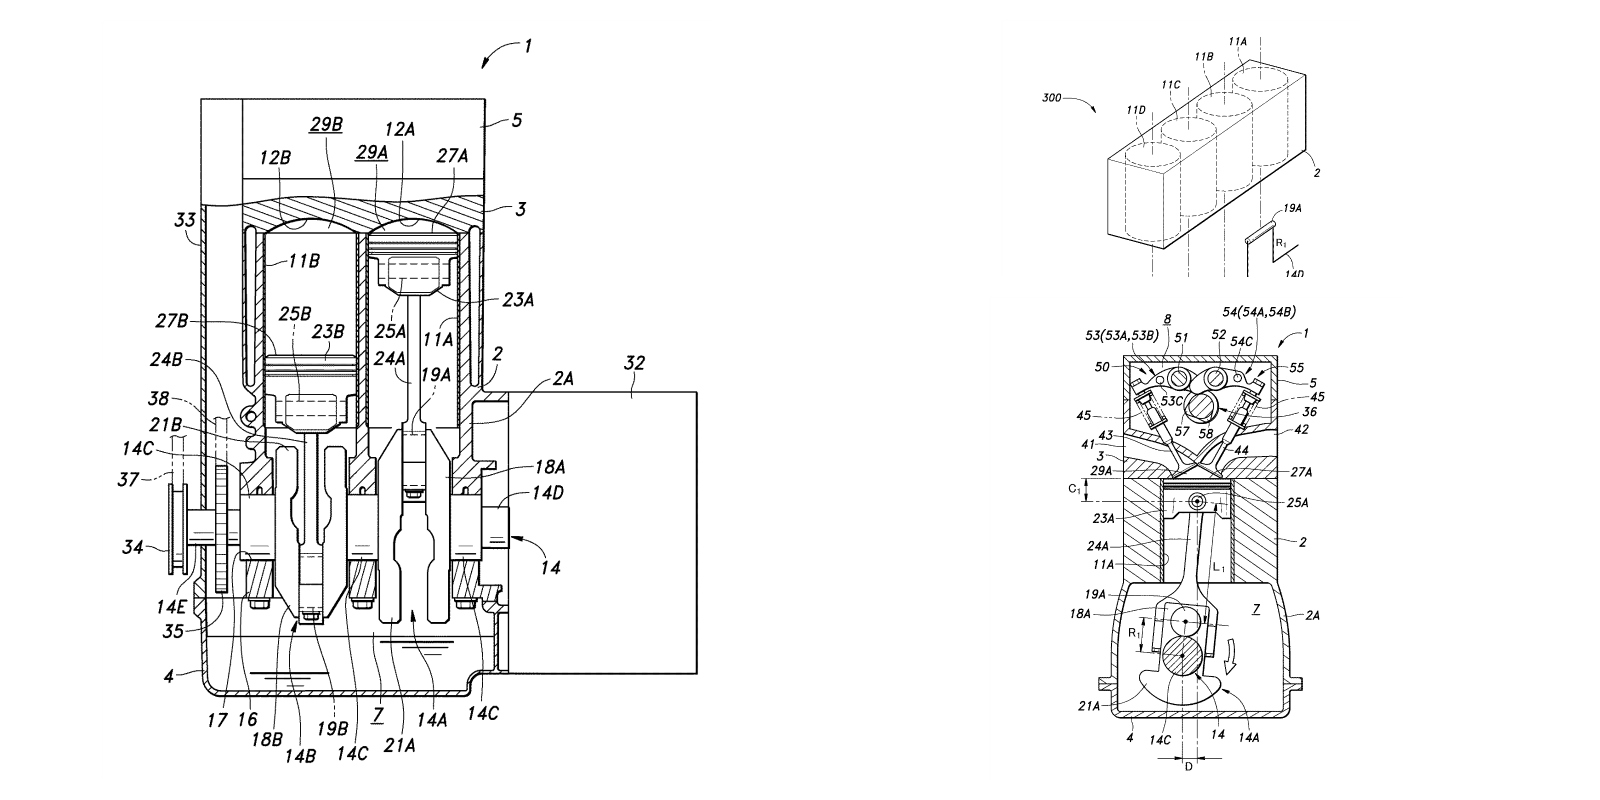 Honda Patents Engine With Two Different Stroke Lengths